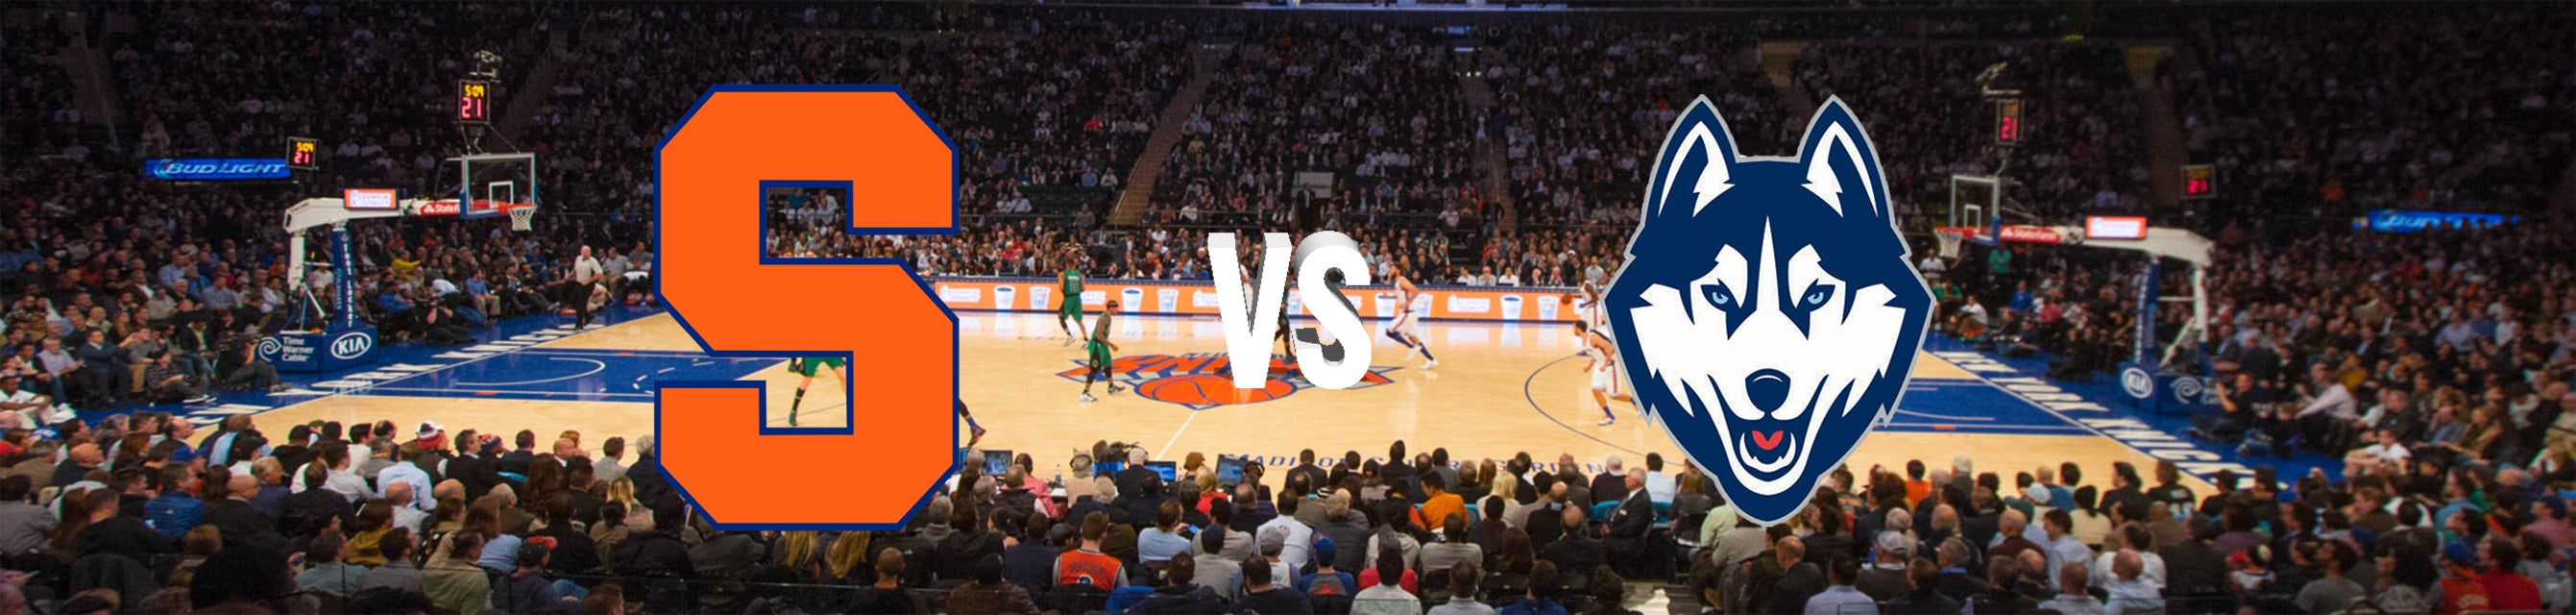 Syracuse Vs Uconn Basketball Tickets Gametime